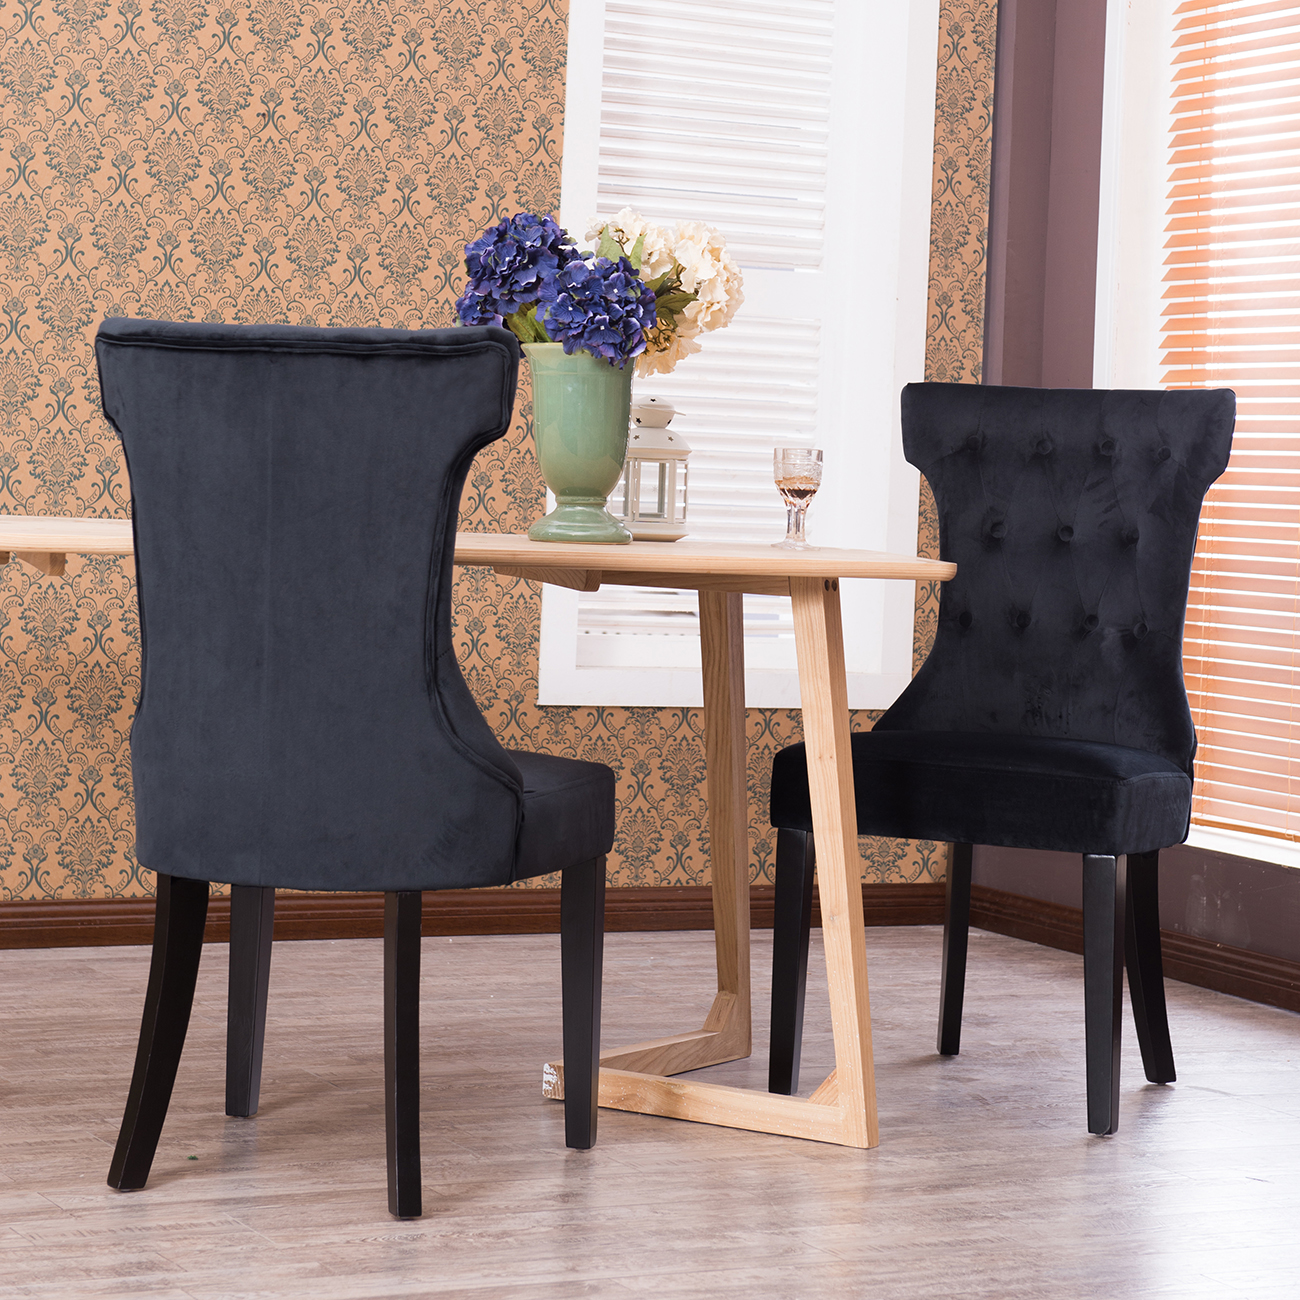 tufted dining room chairs intex inflatable pull out chair set of 2 modern living furniture faux